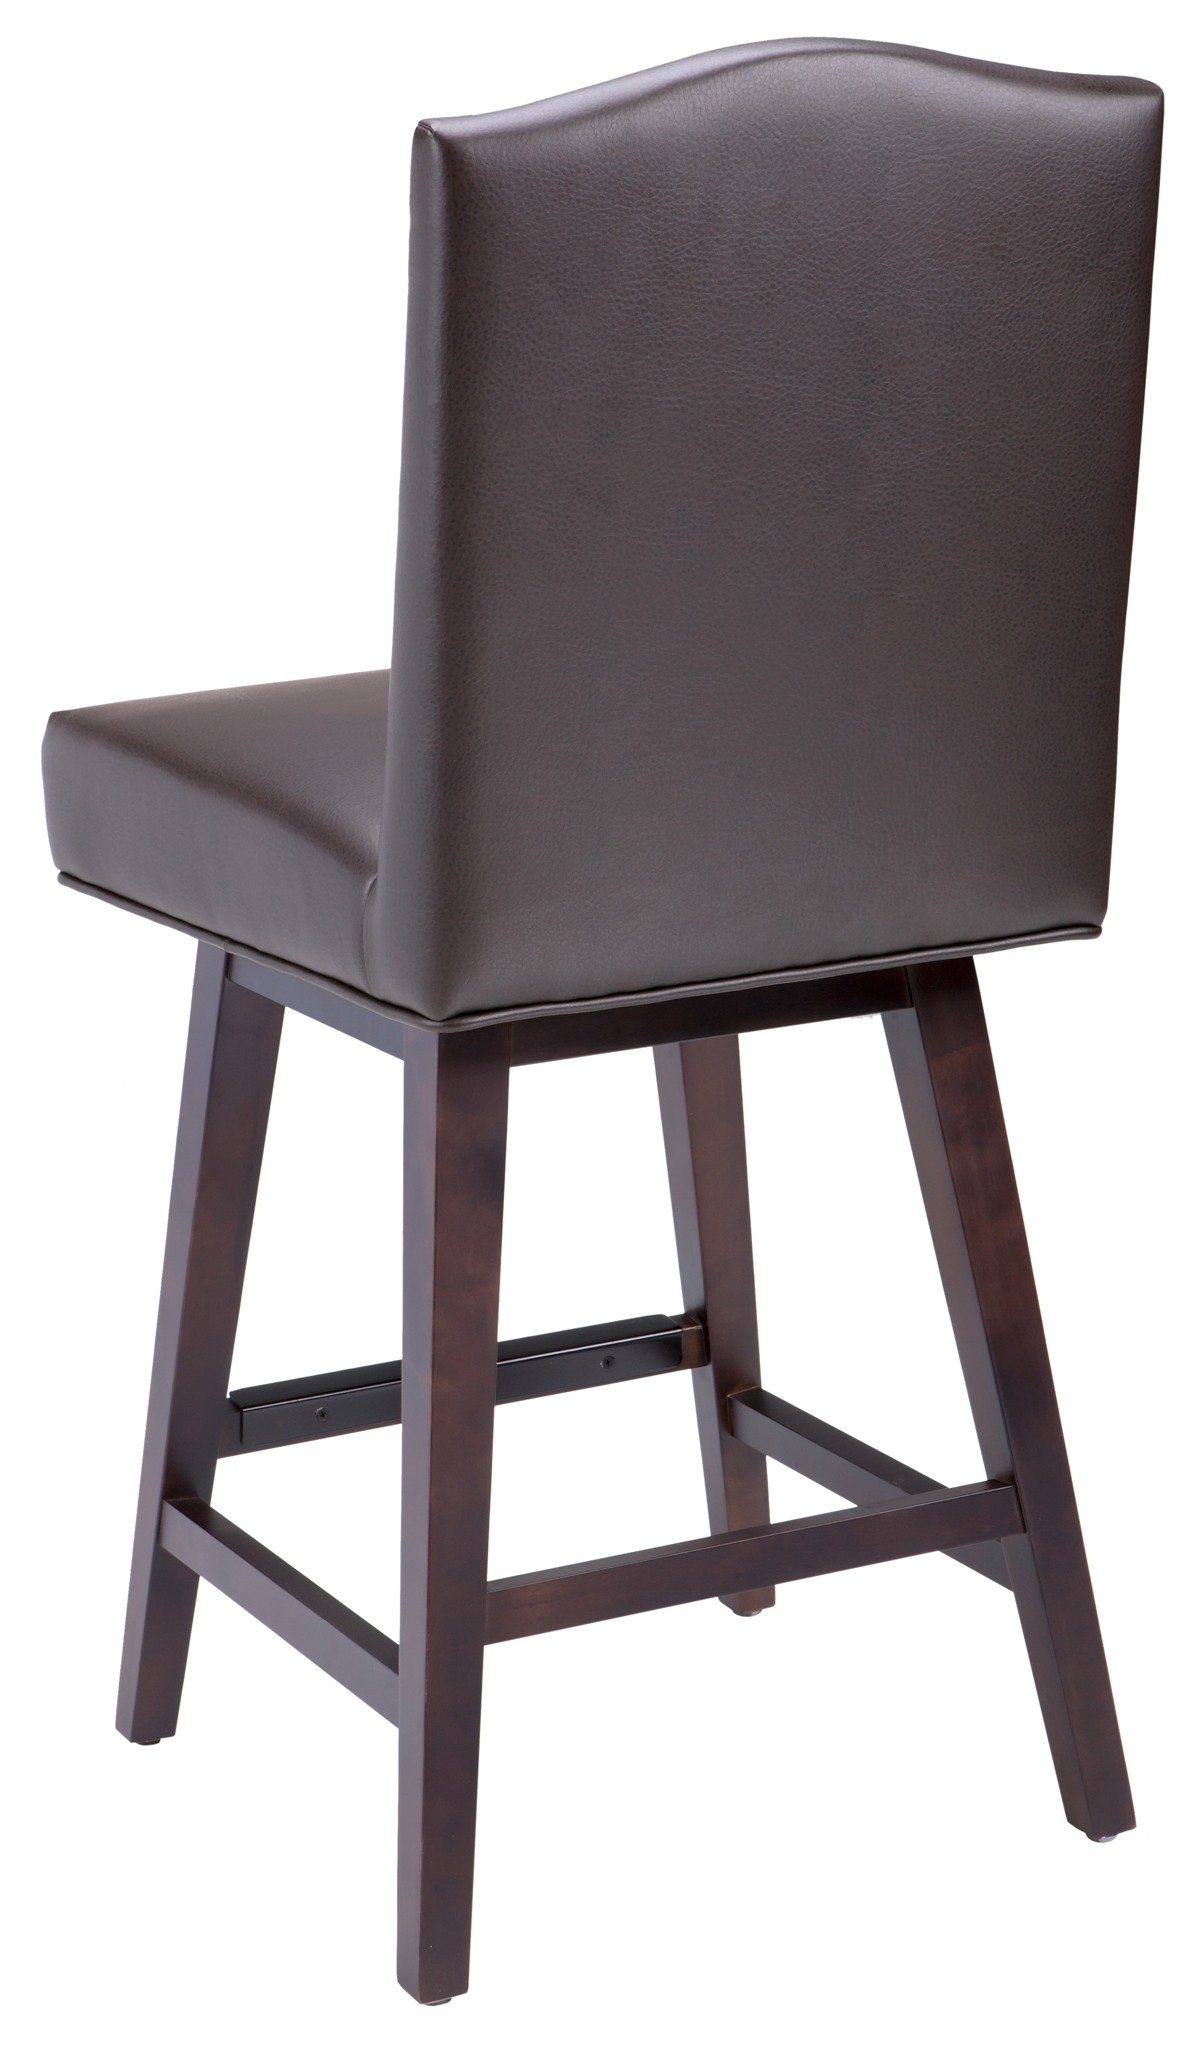 Maison Brown Swivel Counter Stool From Sunpan 73011